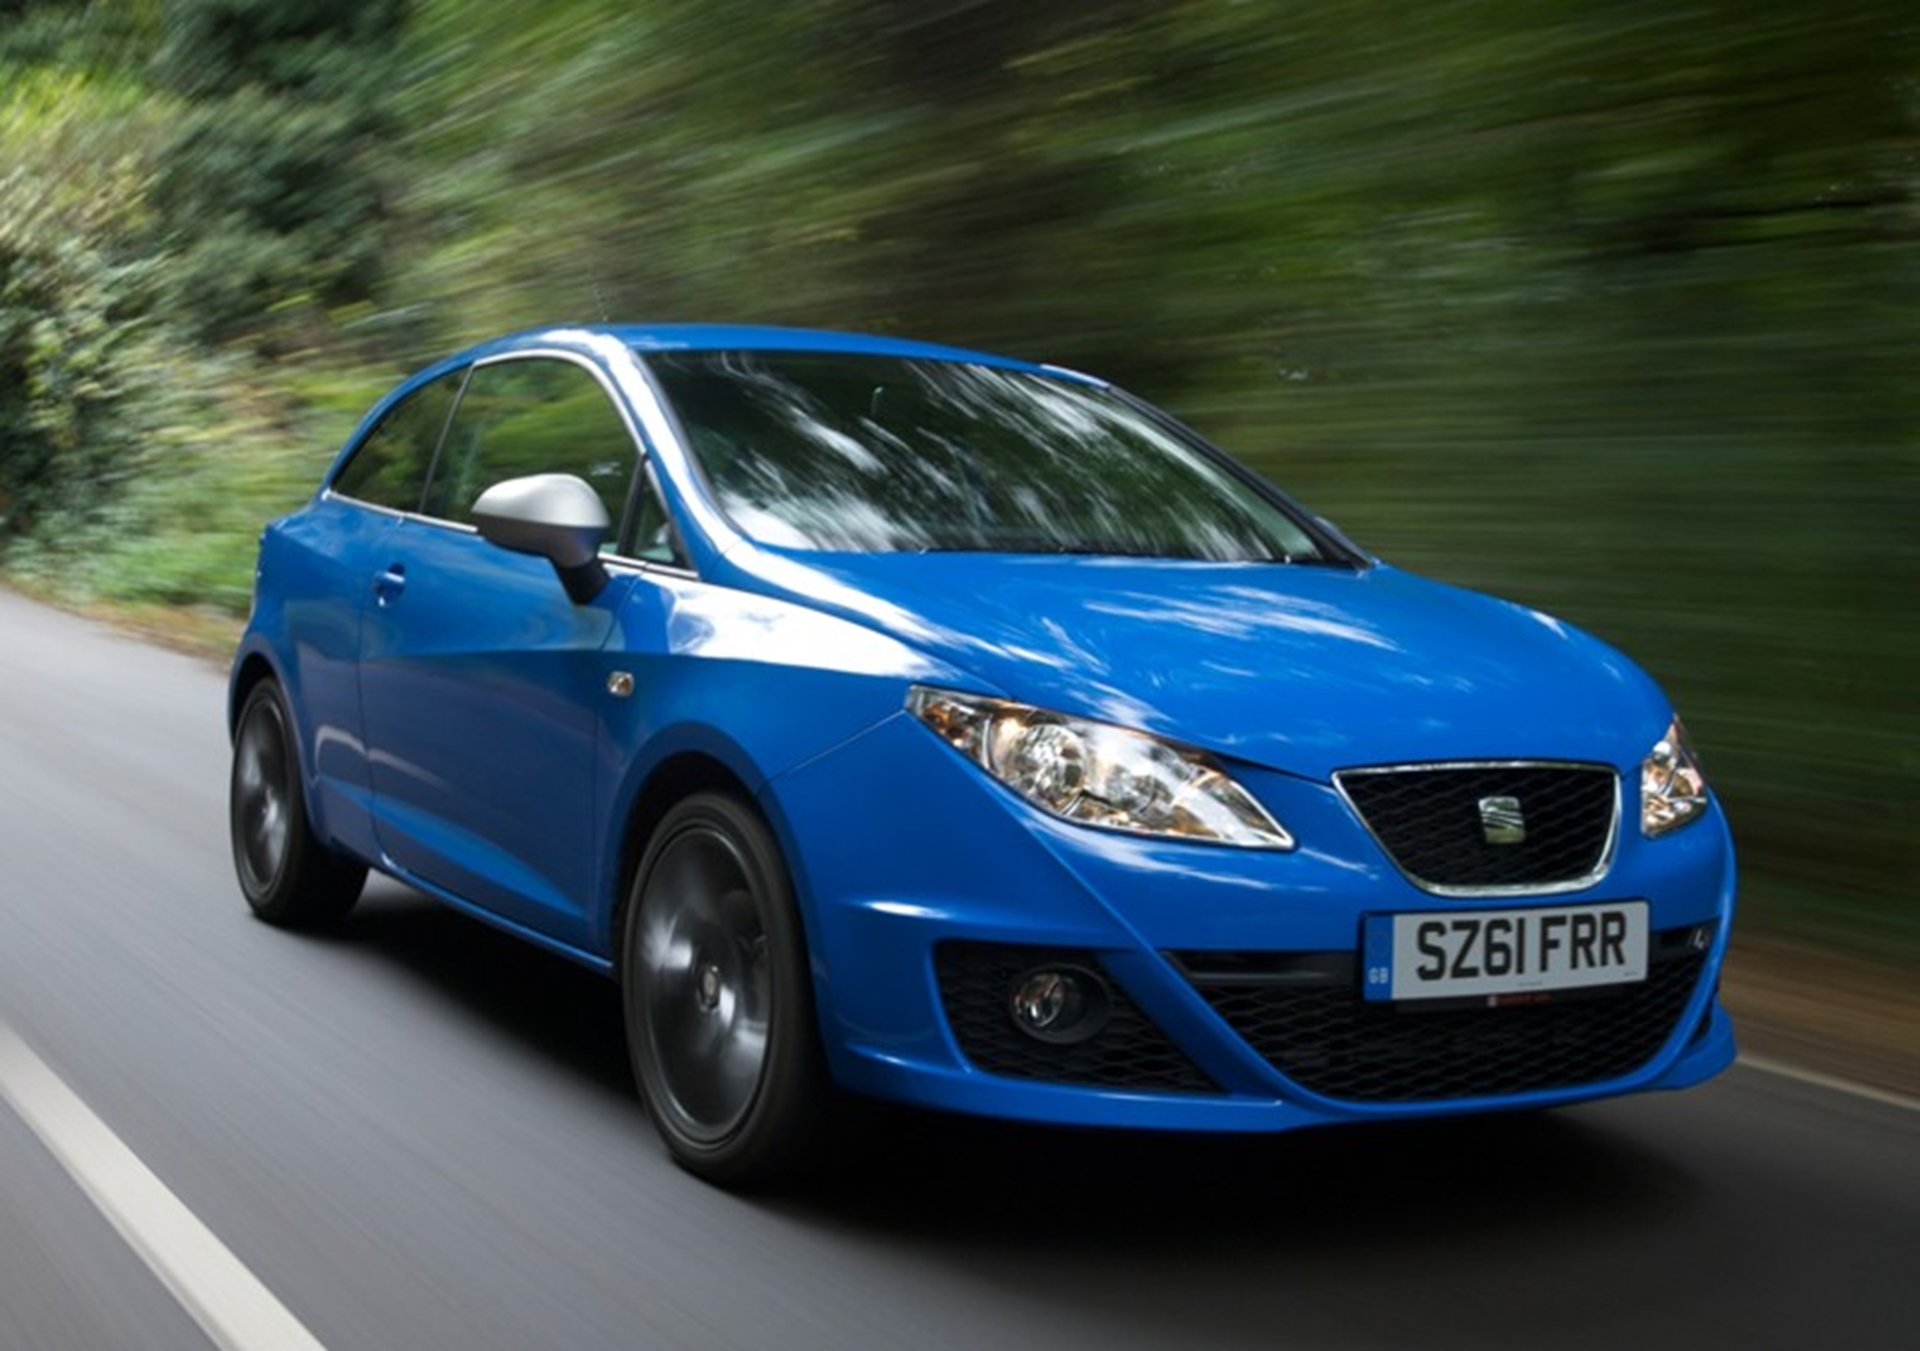 The sporty Ibiza supermini remains SEAT's best-seller